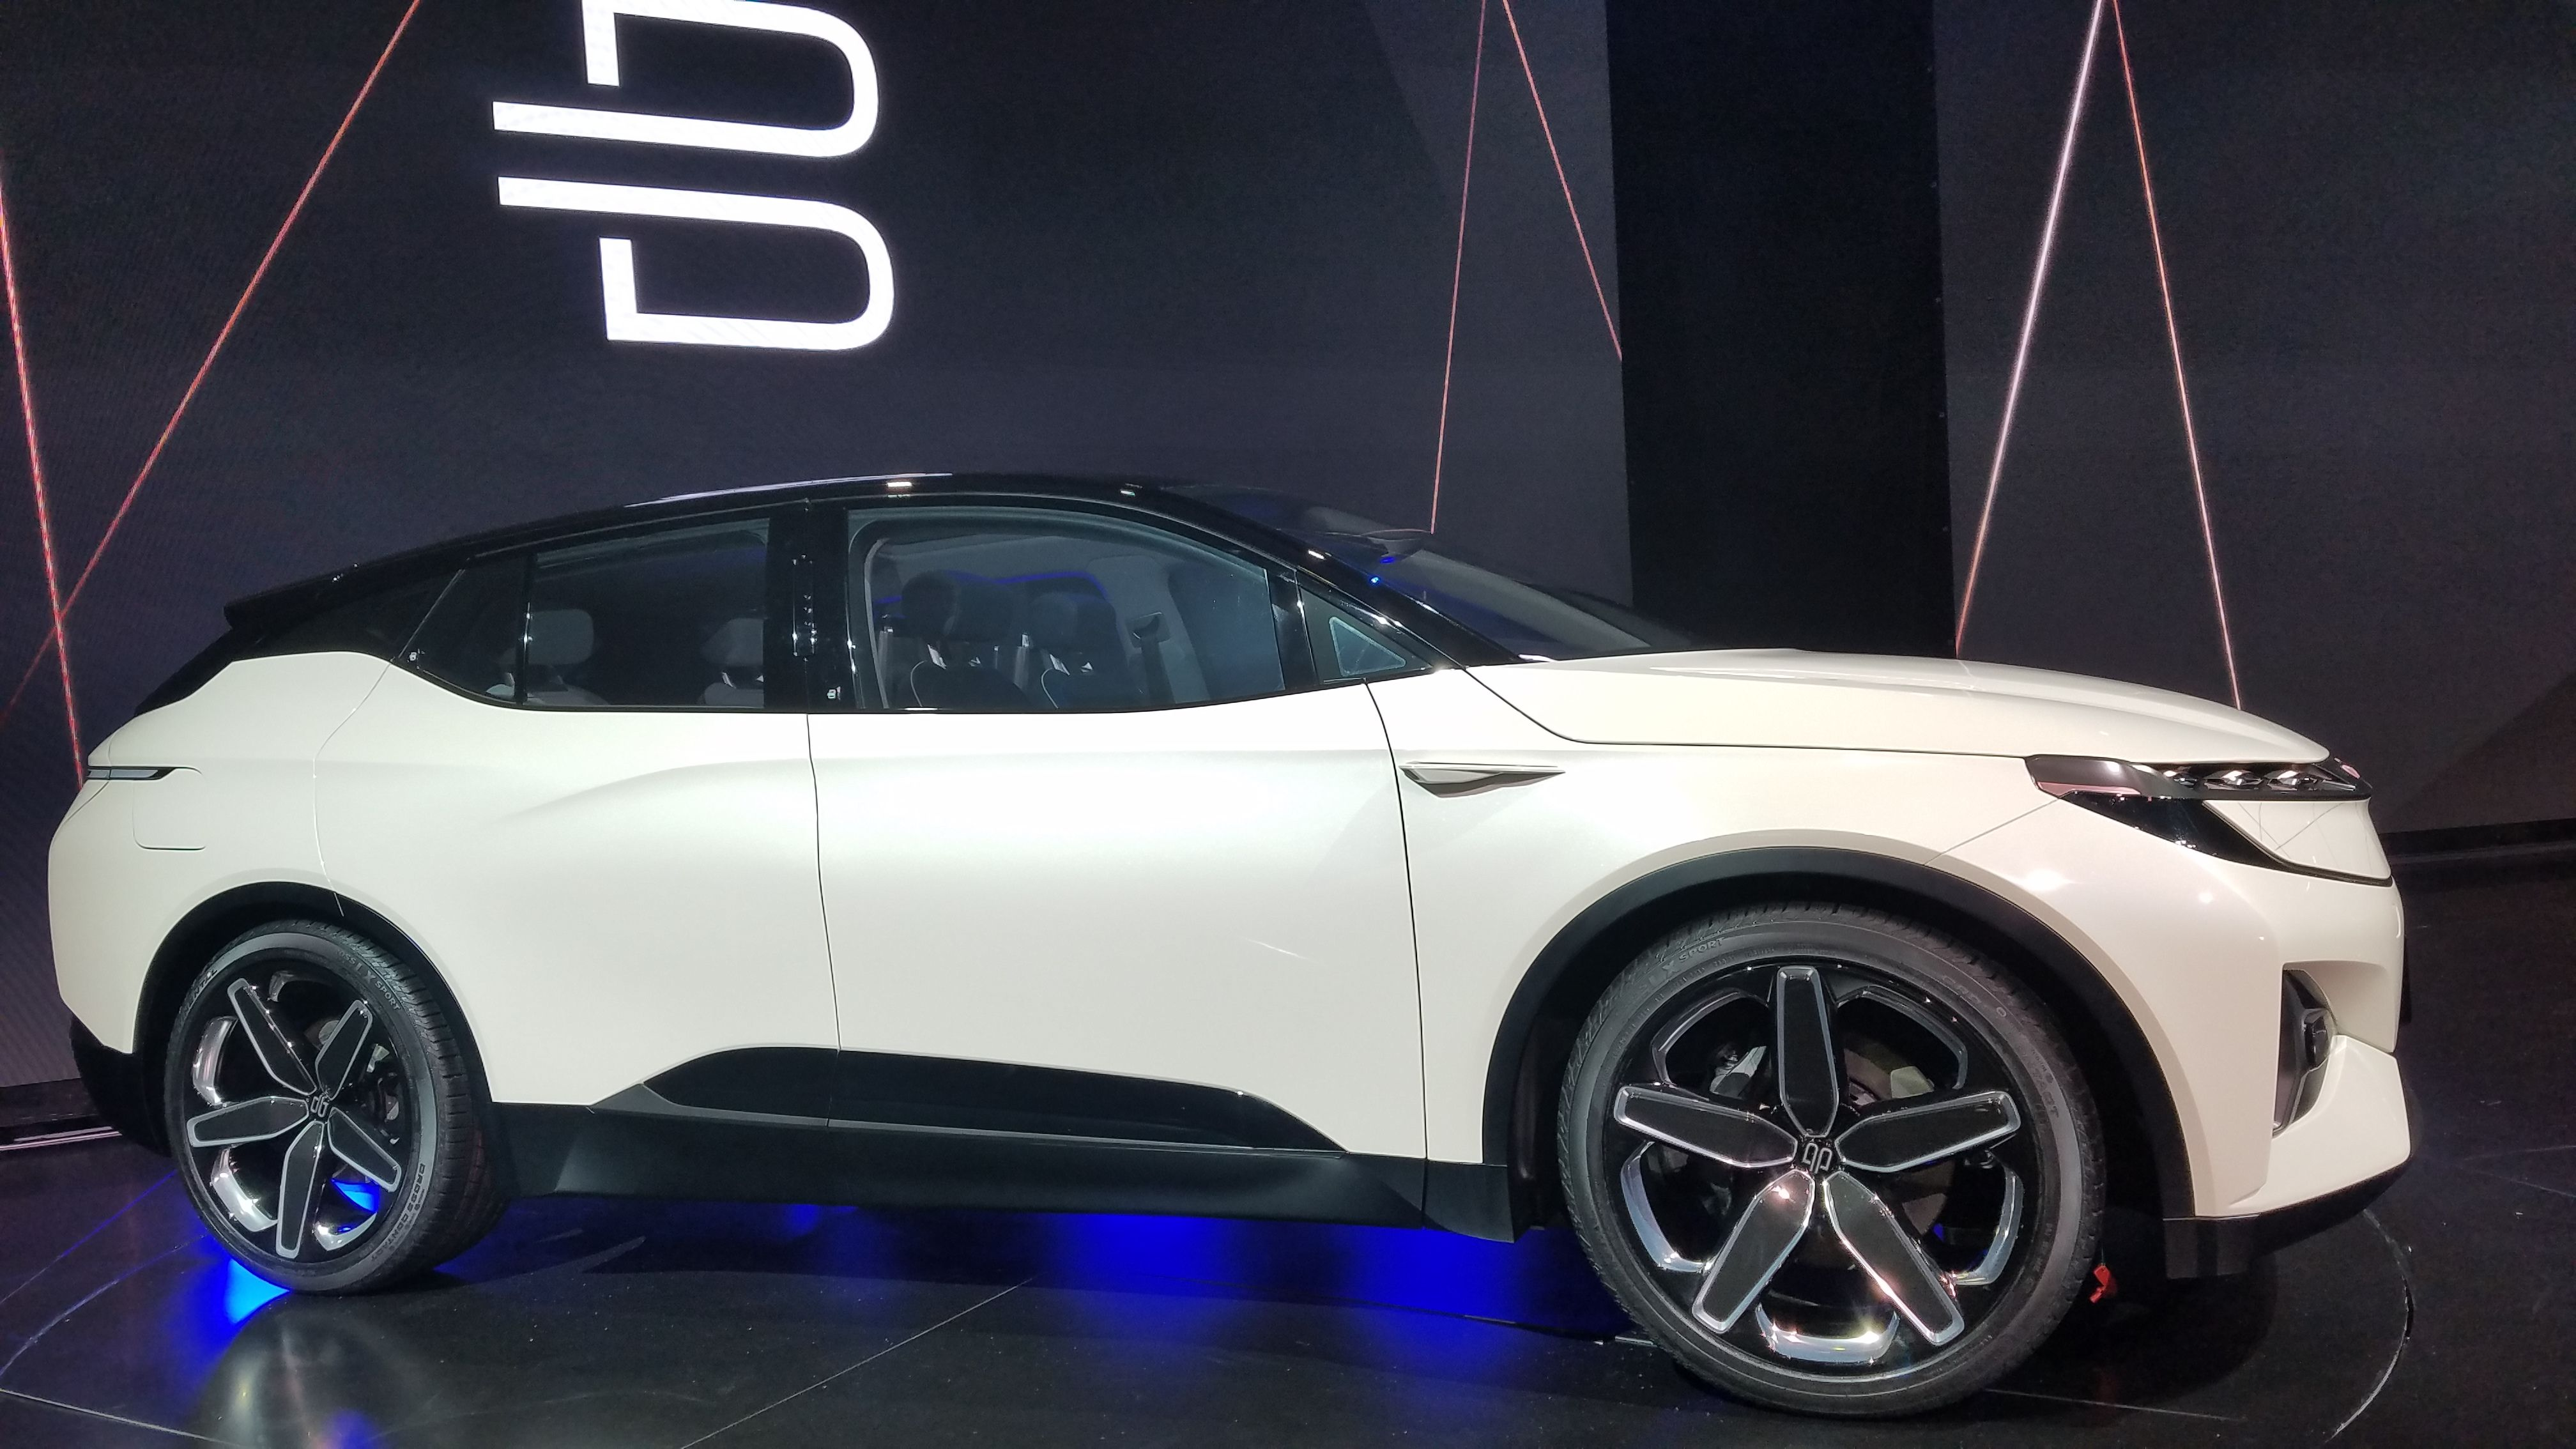 Ces 2018 Byton S Electric Suv Is The Car Of The Future Suv Car Concept Cars